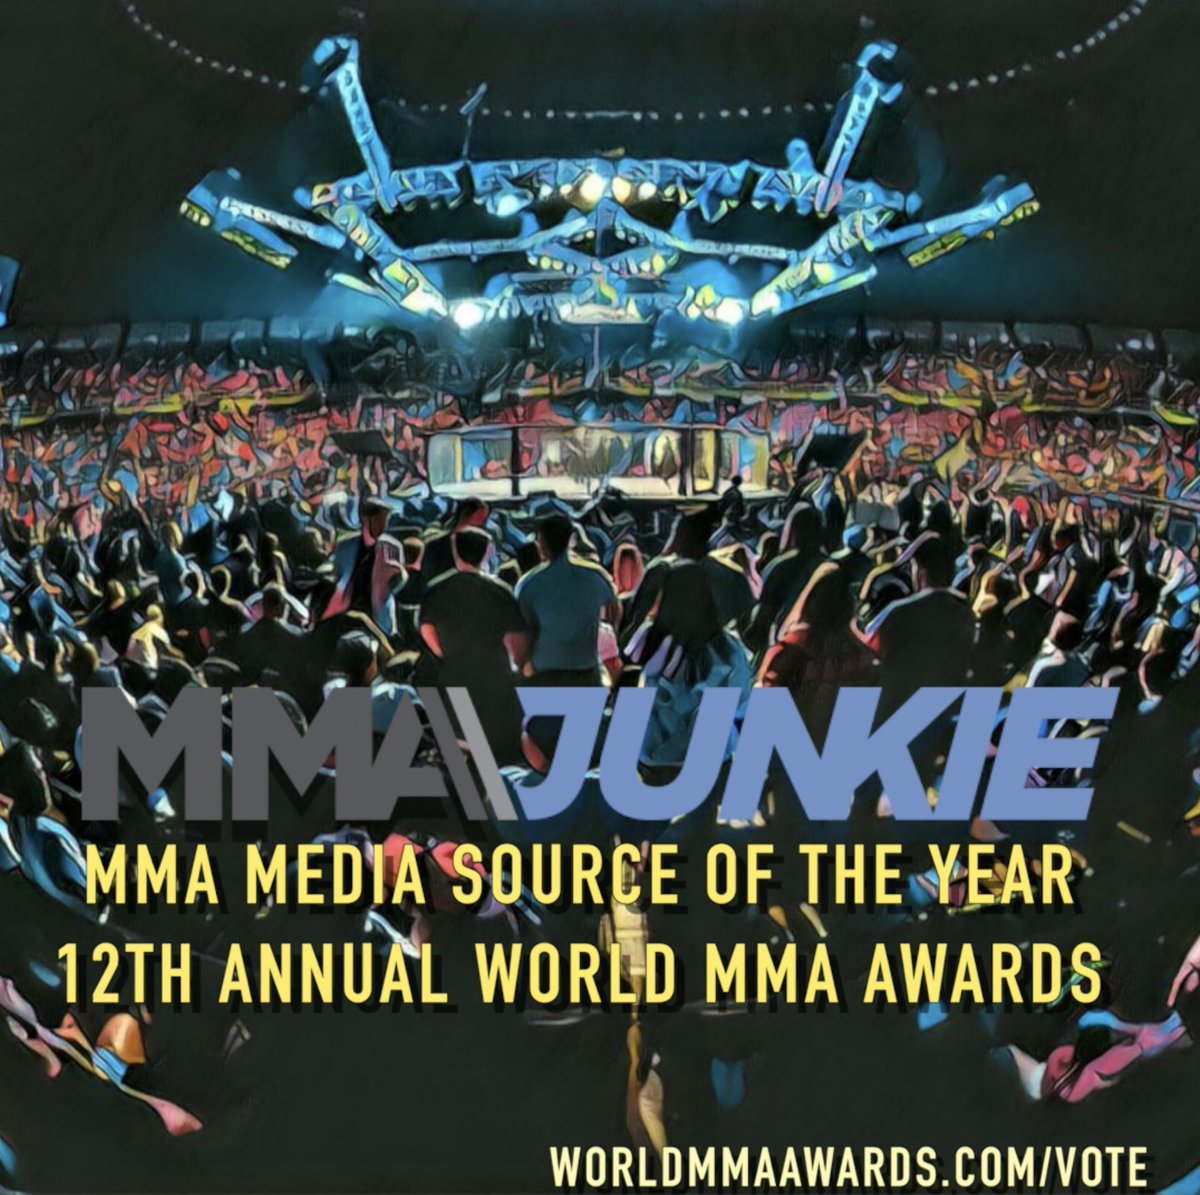 Voting for the 12th Annual @FightersOnly World MMA Awards are open. If you like our work, MMA Junkie is nominated for Best Media Source.   Vote here: https://t.co/58lgKtDUkB https://t.co/mj0JWWrrIn